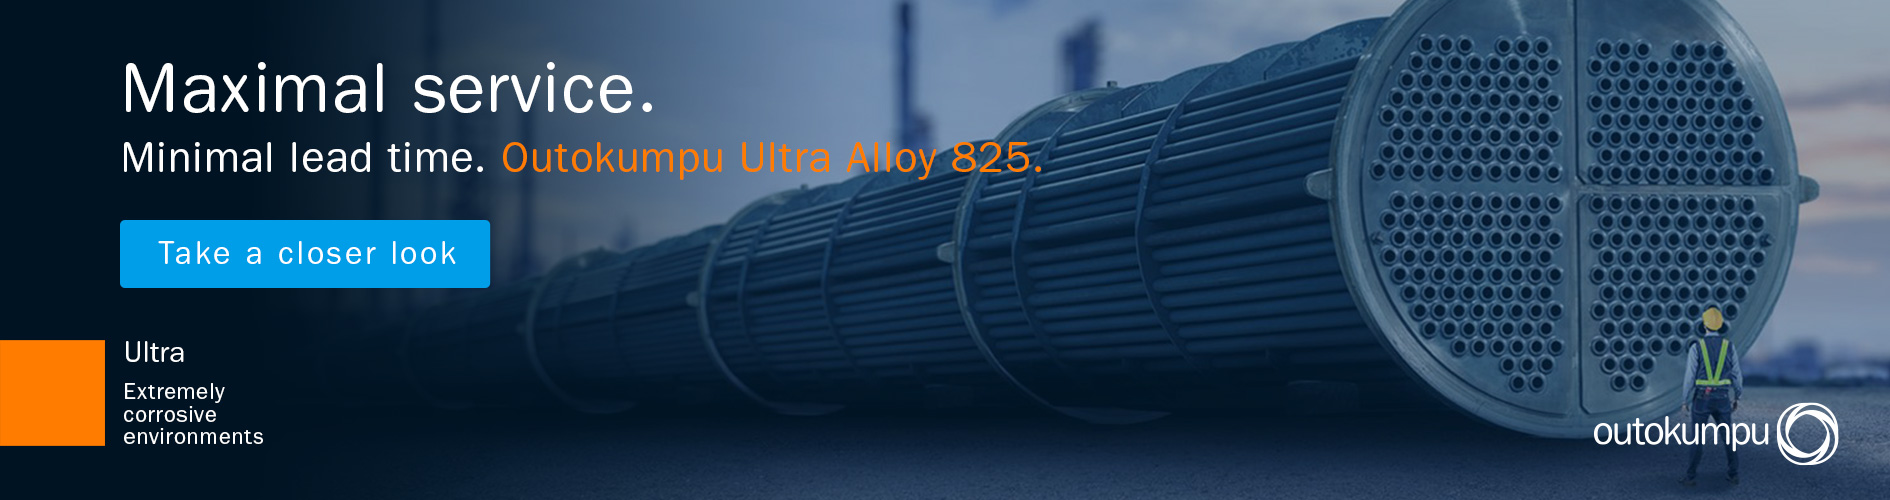 Ultra Alloy 825 campaign banner